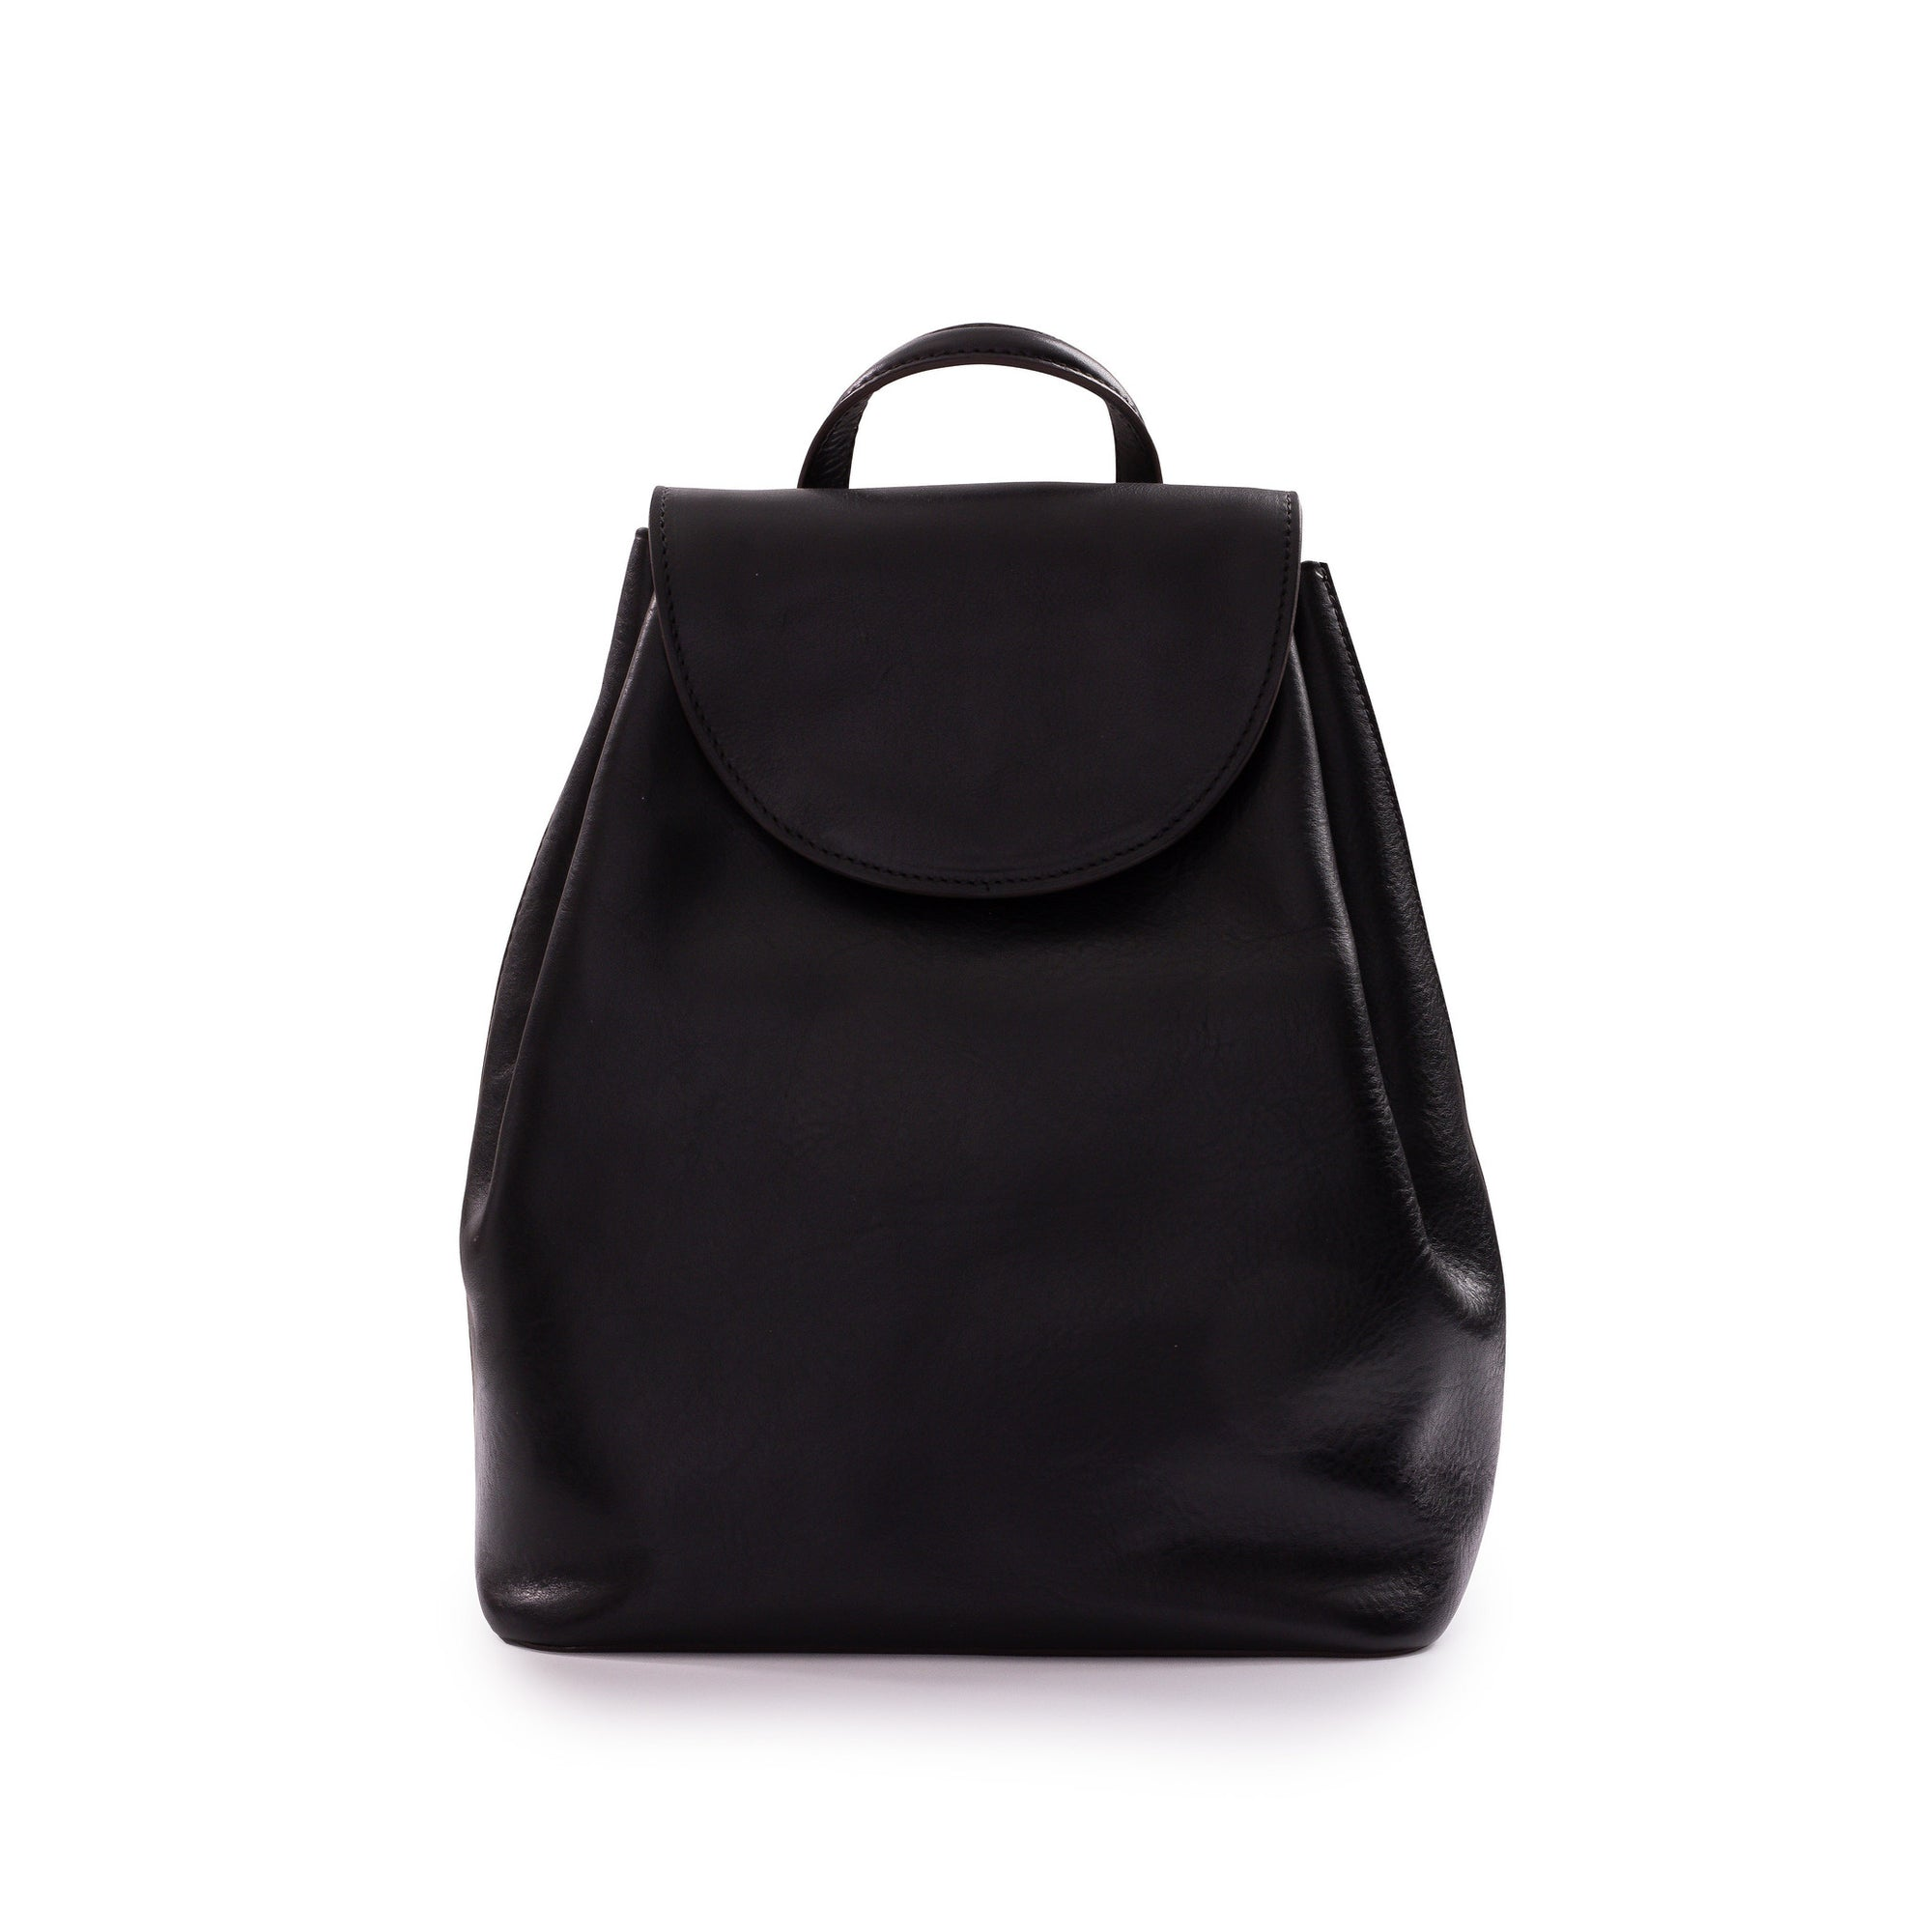 Belle Leather Backpack in Black